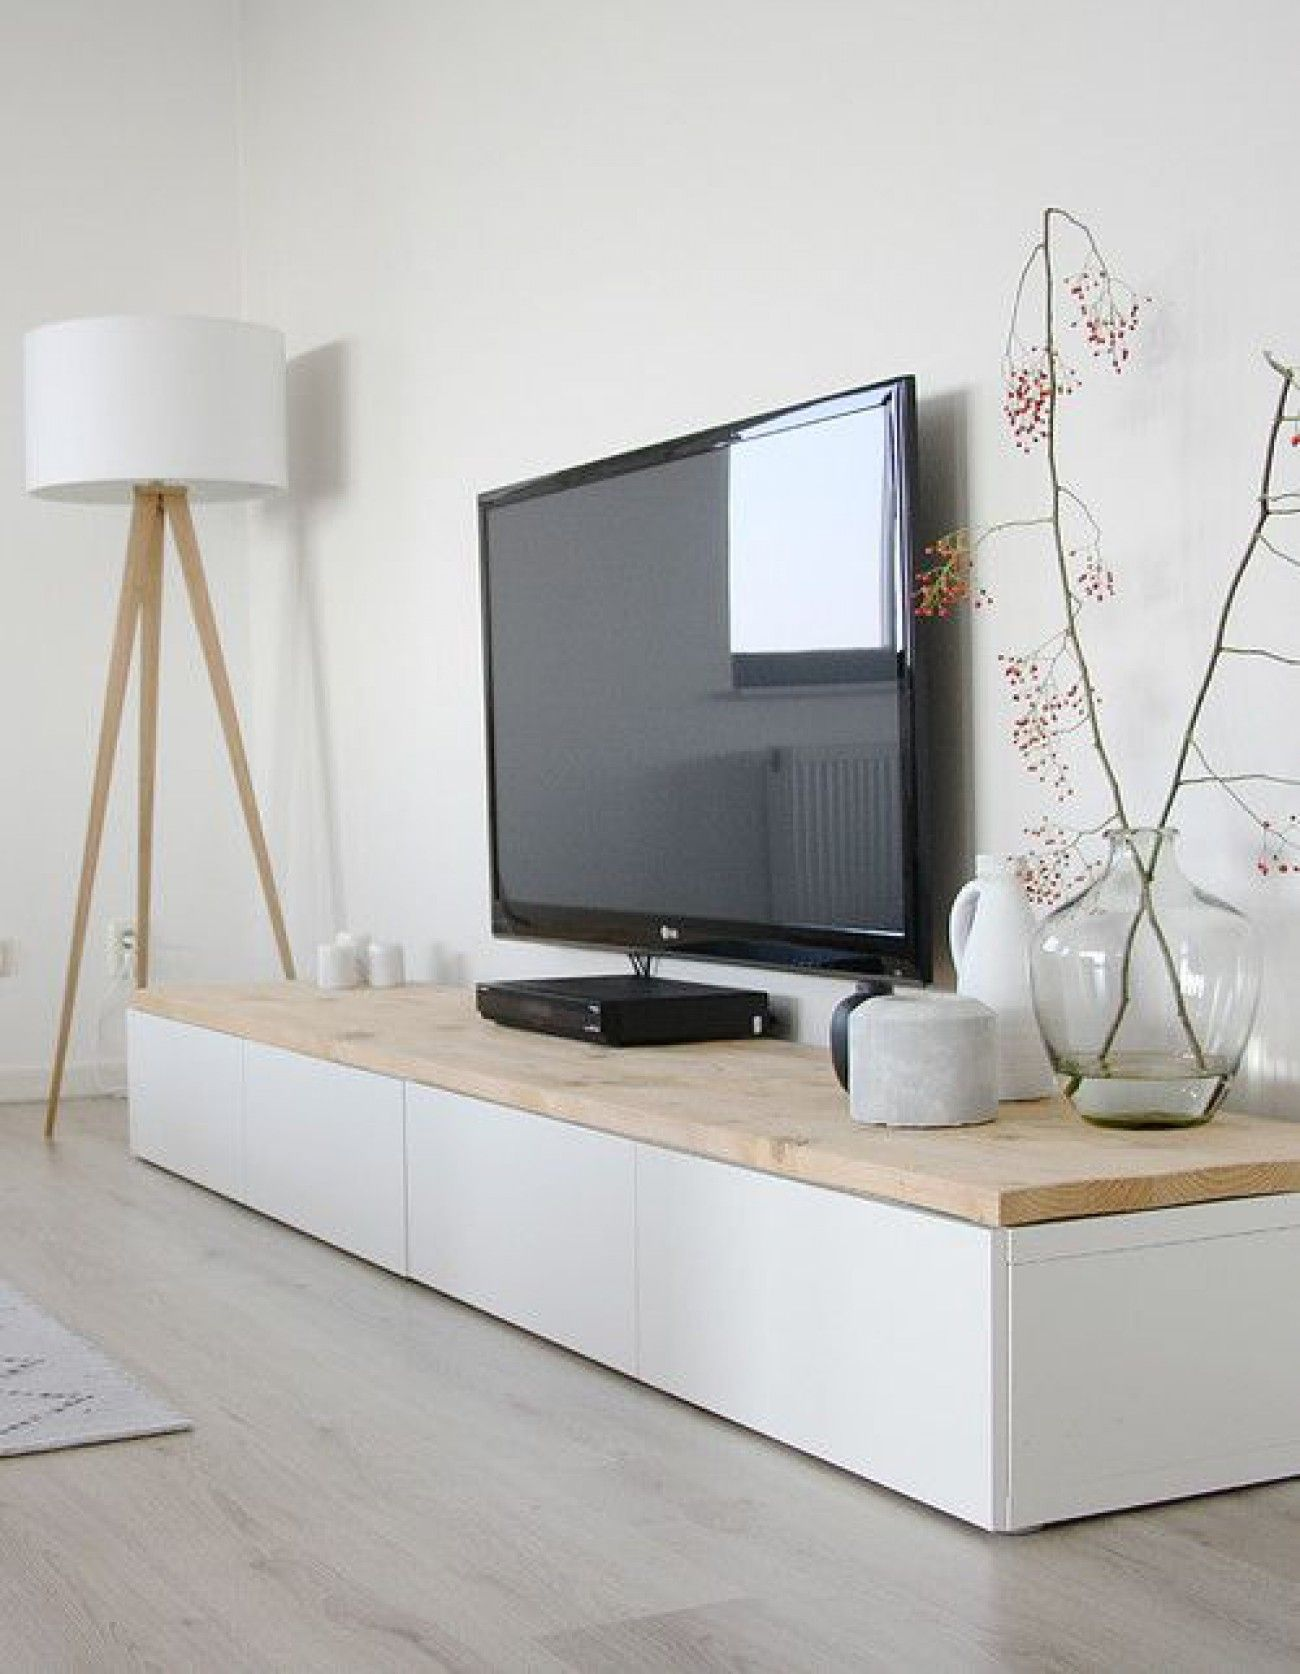 Lage Witte Tv Kast Interieur In 2019 Scandinavische